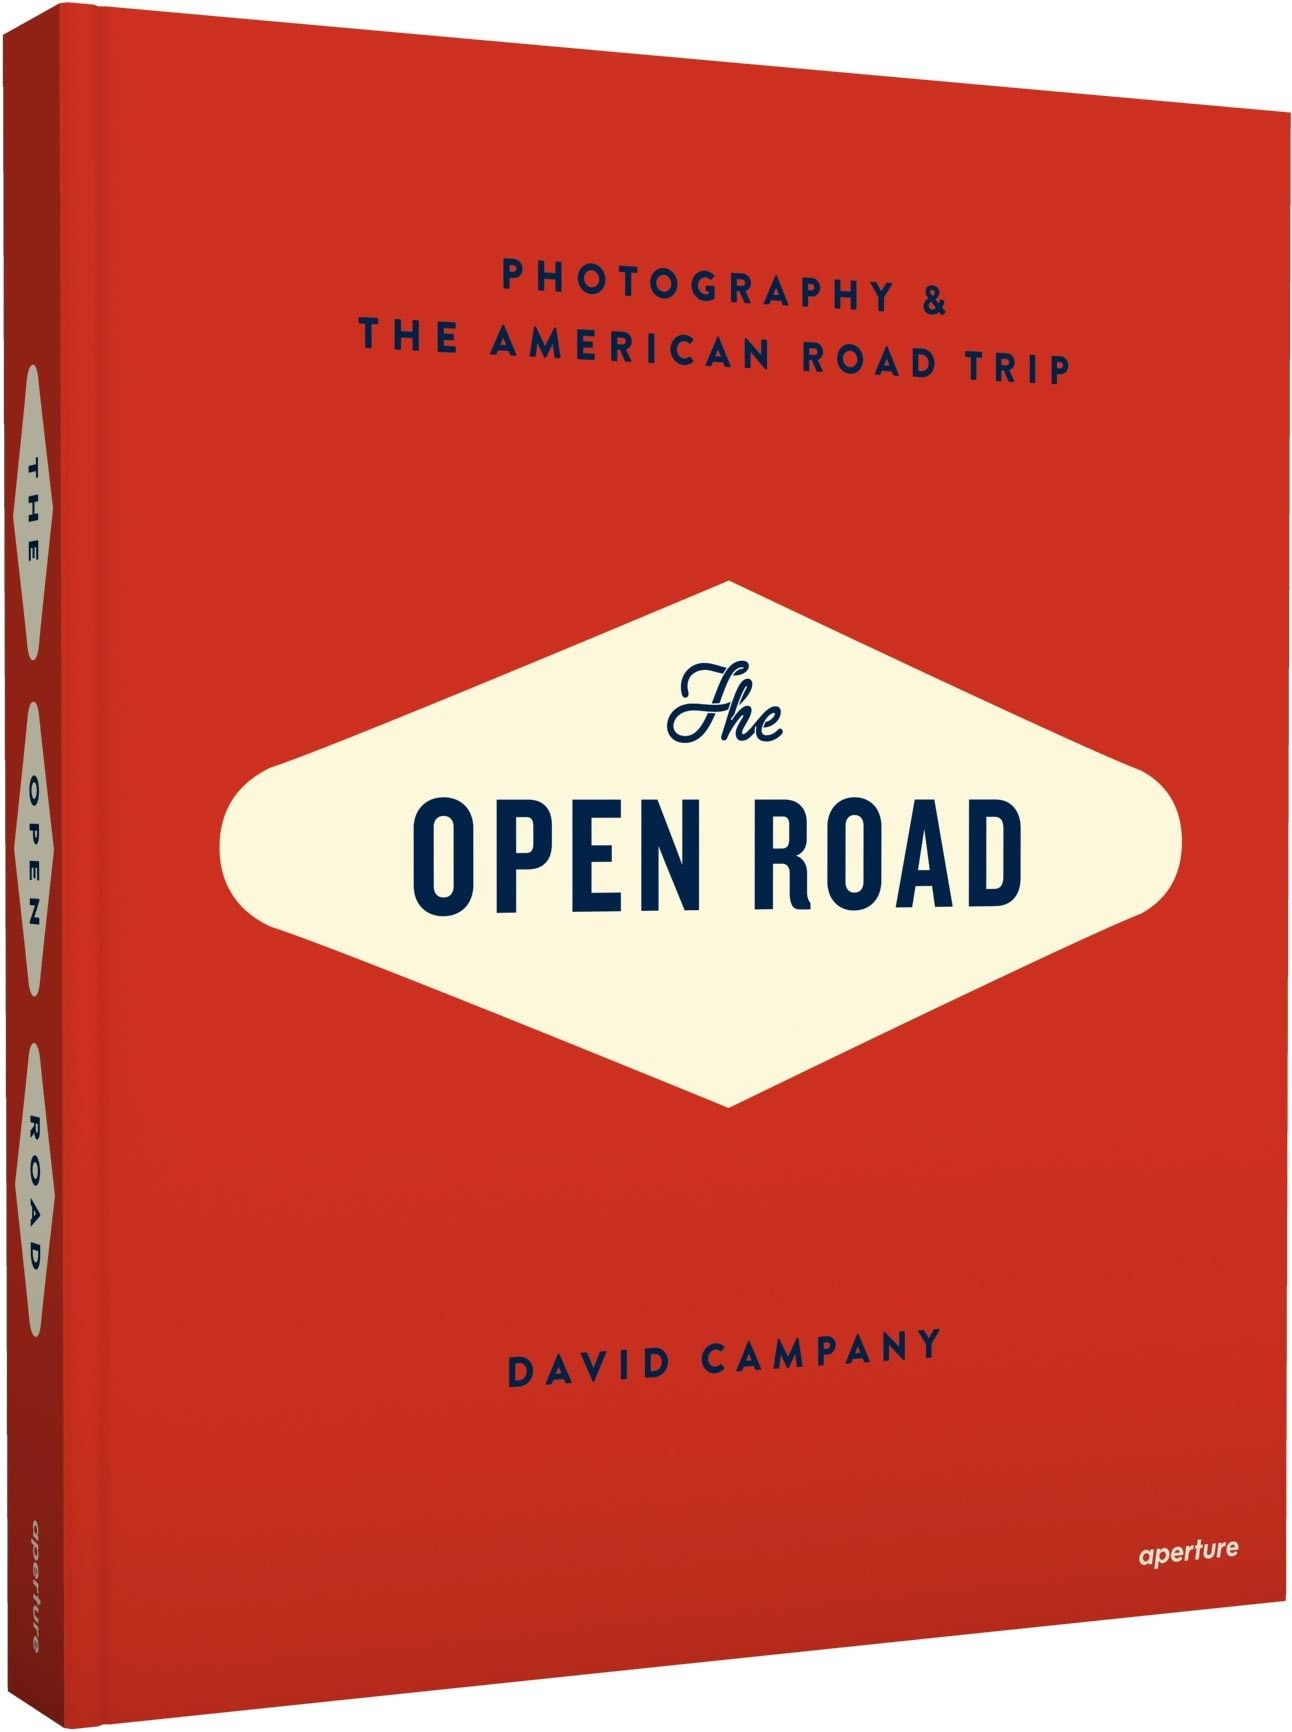 Catalogue for our exhibition The Open Road is the first